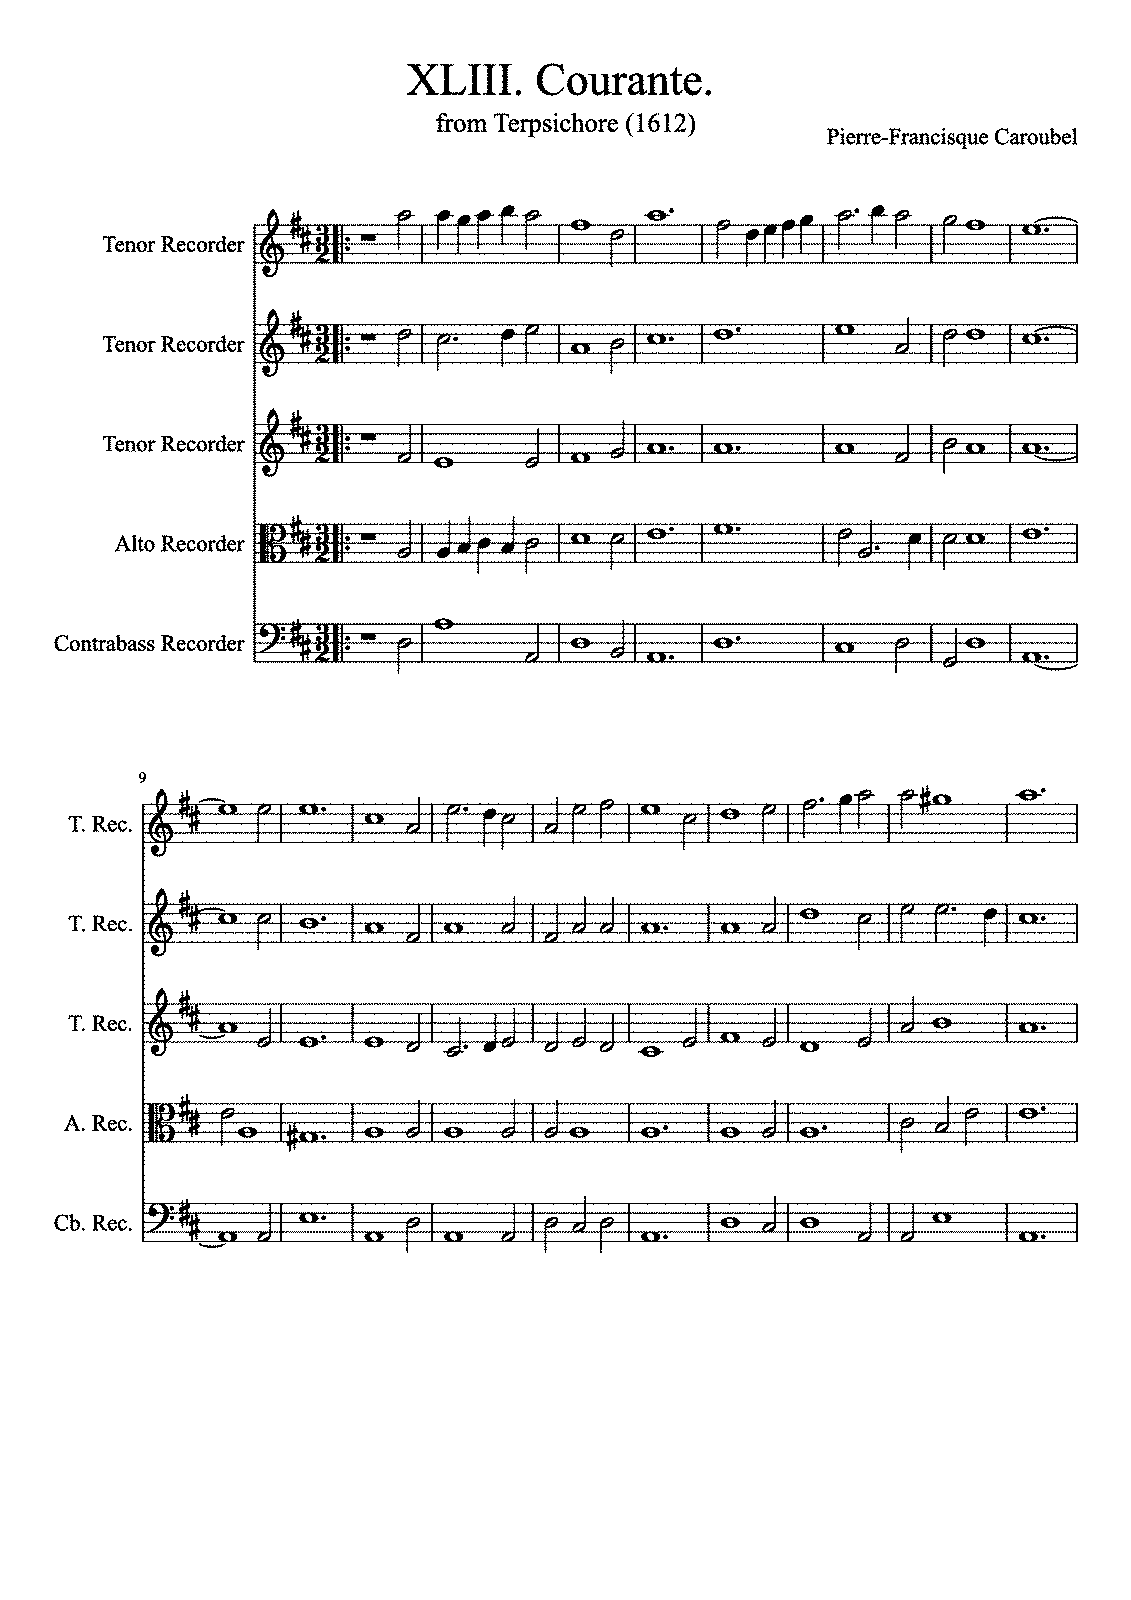 PMLP587250-XLIII Courante from Terpsichore Francisque Caroubel 1612.pdf